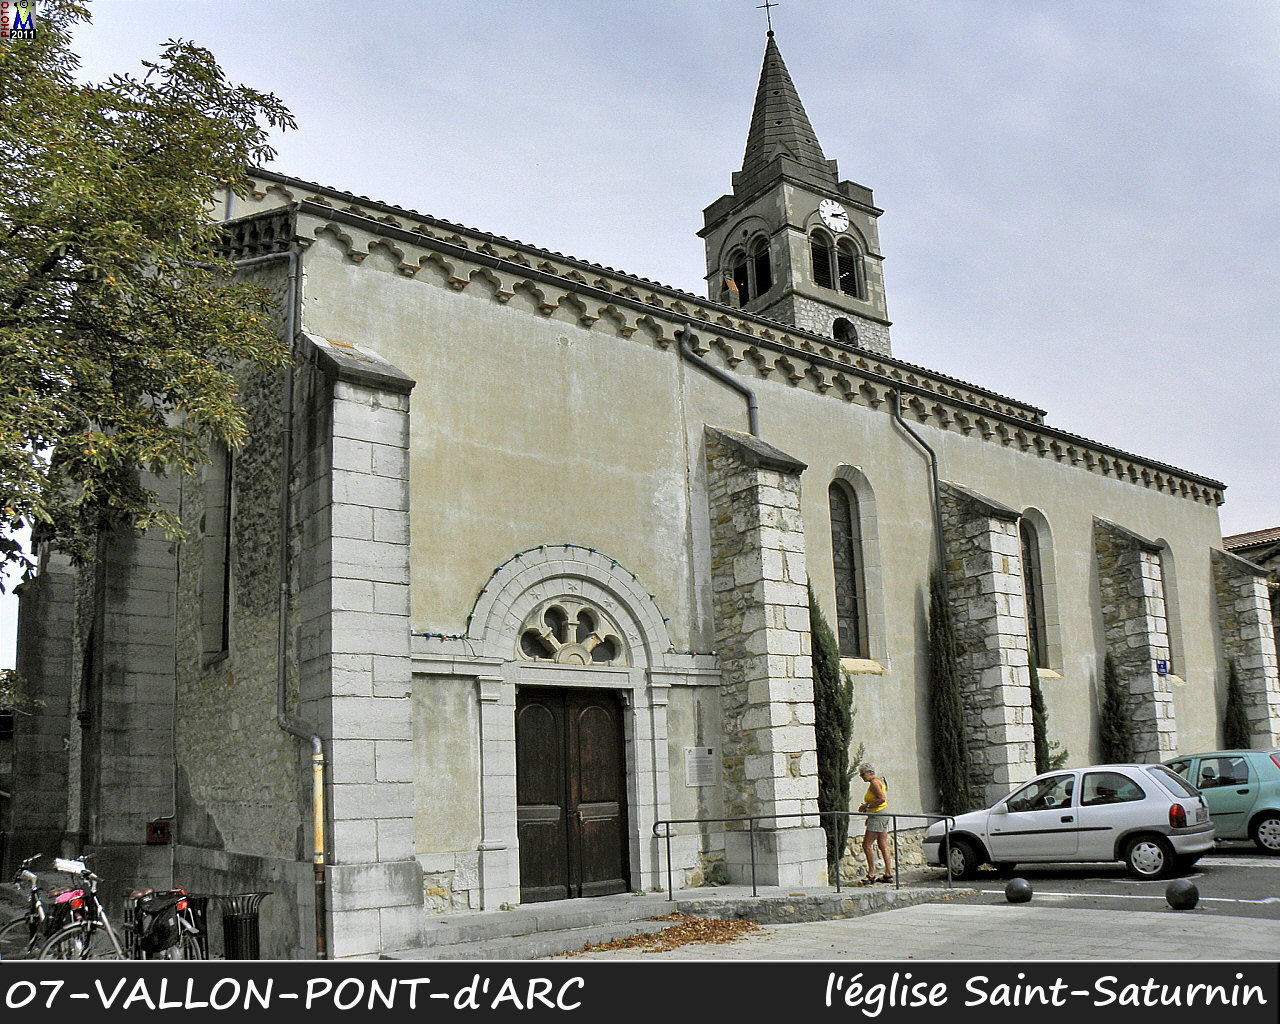 07VALLON-PONT-ARC_eglise_102.jpg